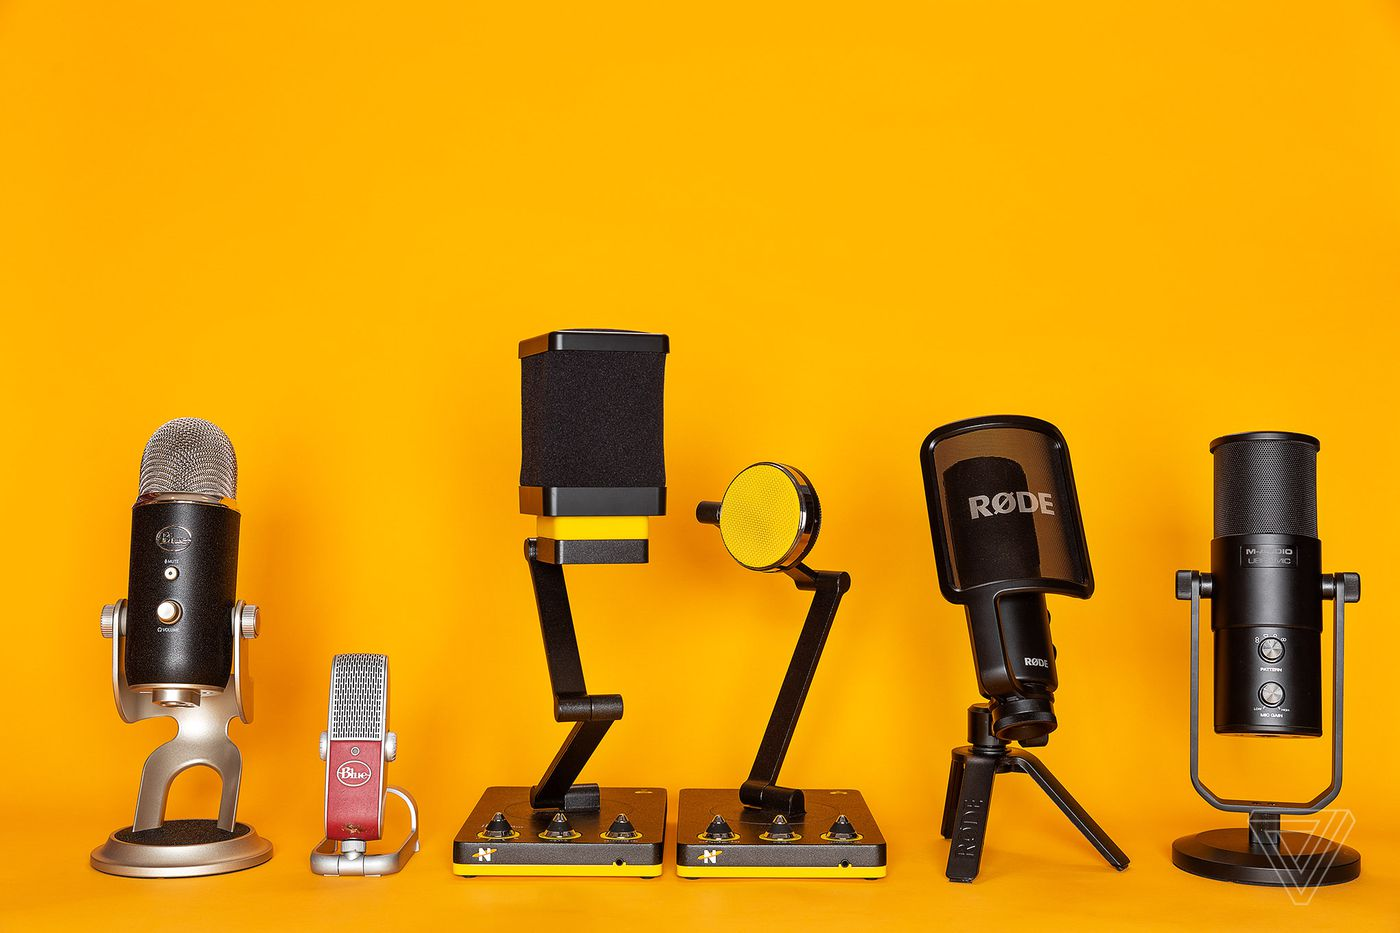 The best microphones to start podcasting with - The Verge